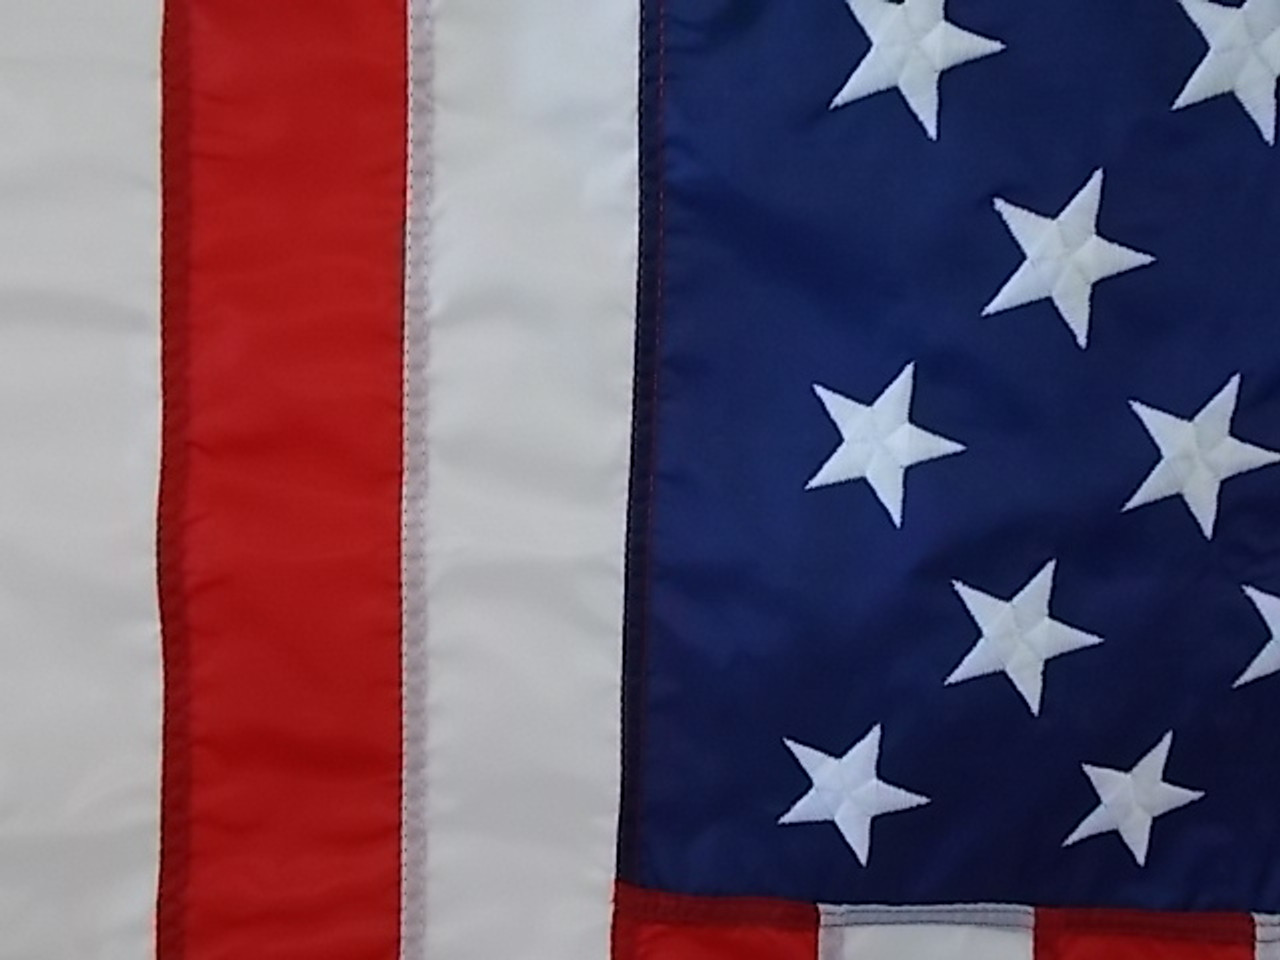 USA COMMERCIAL GRADE NYLON FLAGS 3X5' to 30X60'